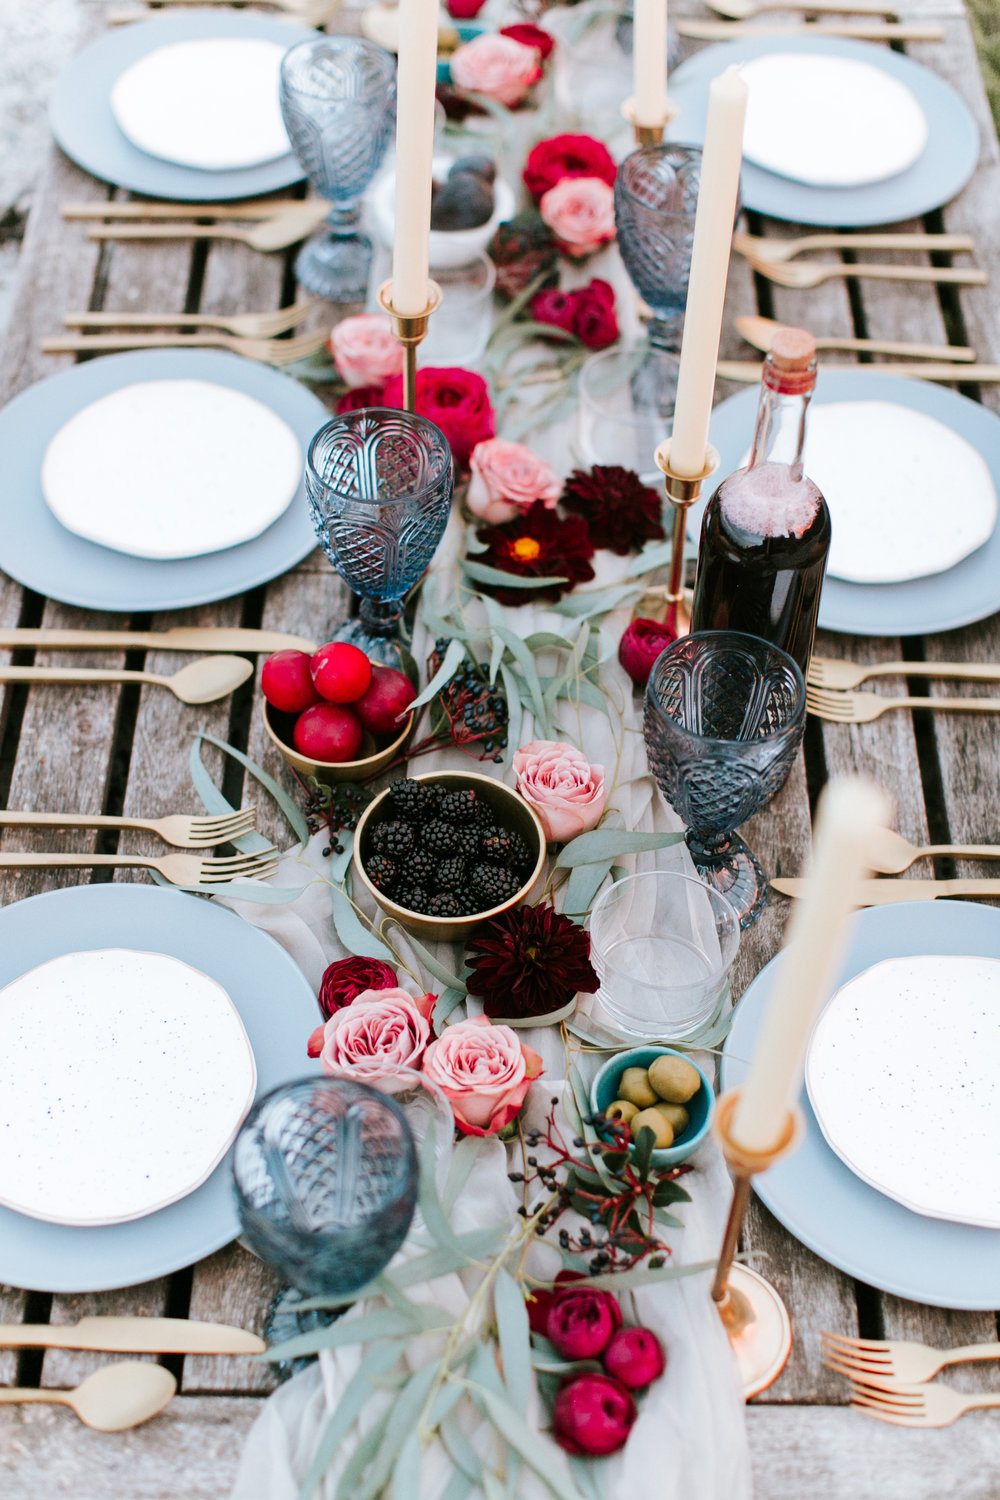 Junebug Weddings: Intimate Mountain Top Inspiration. Click for more.